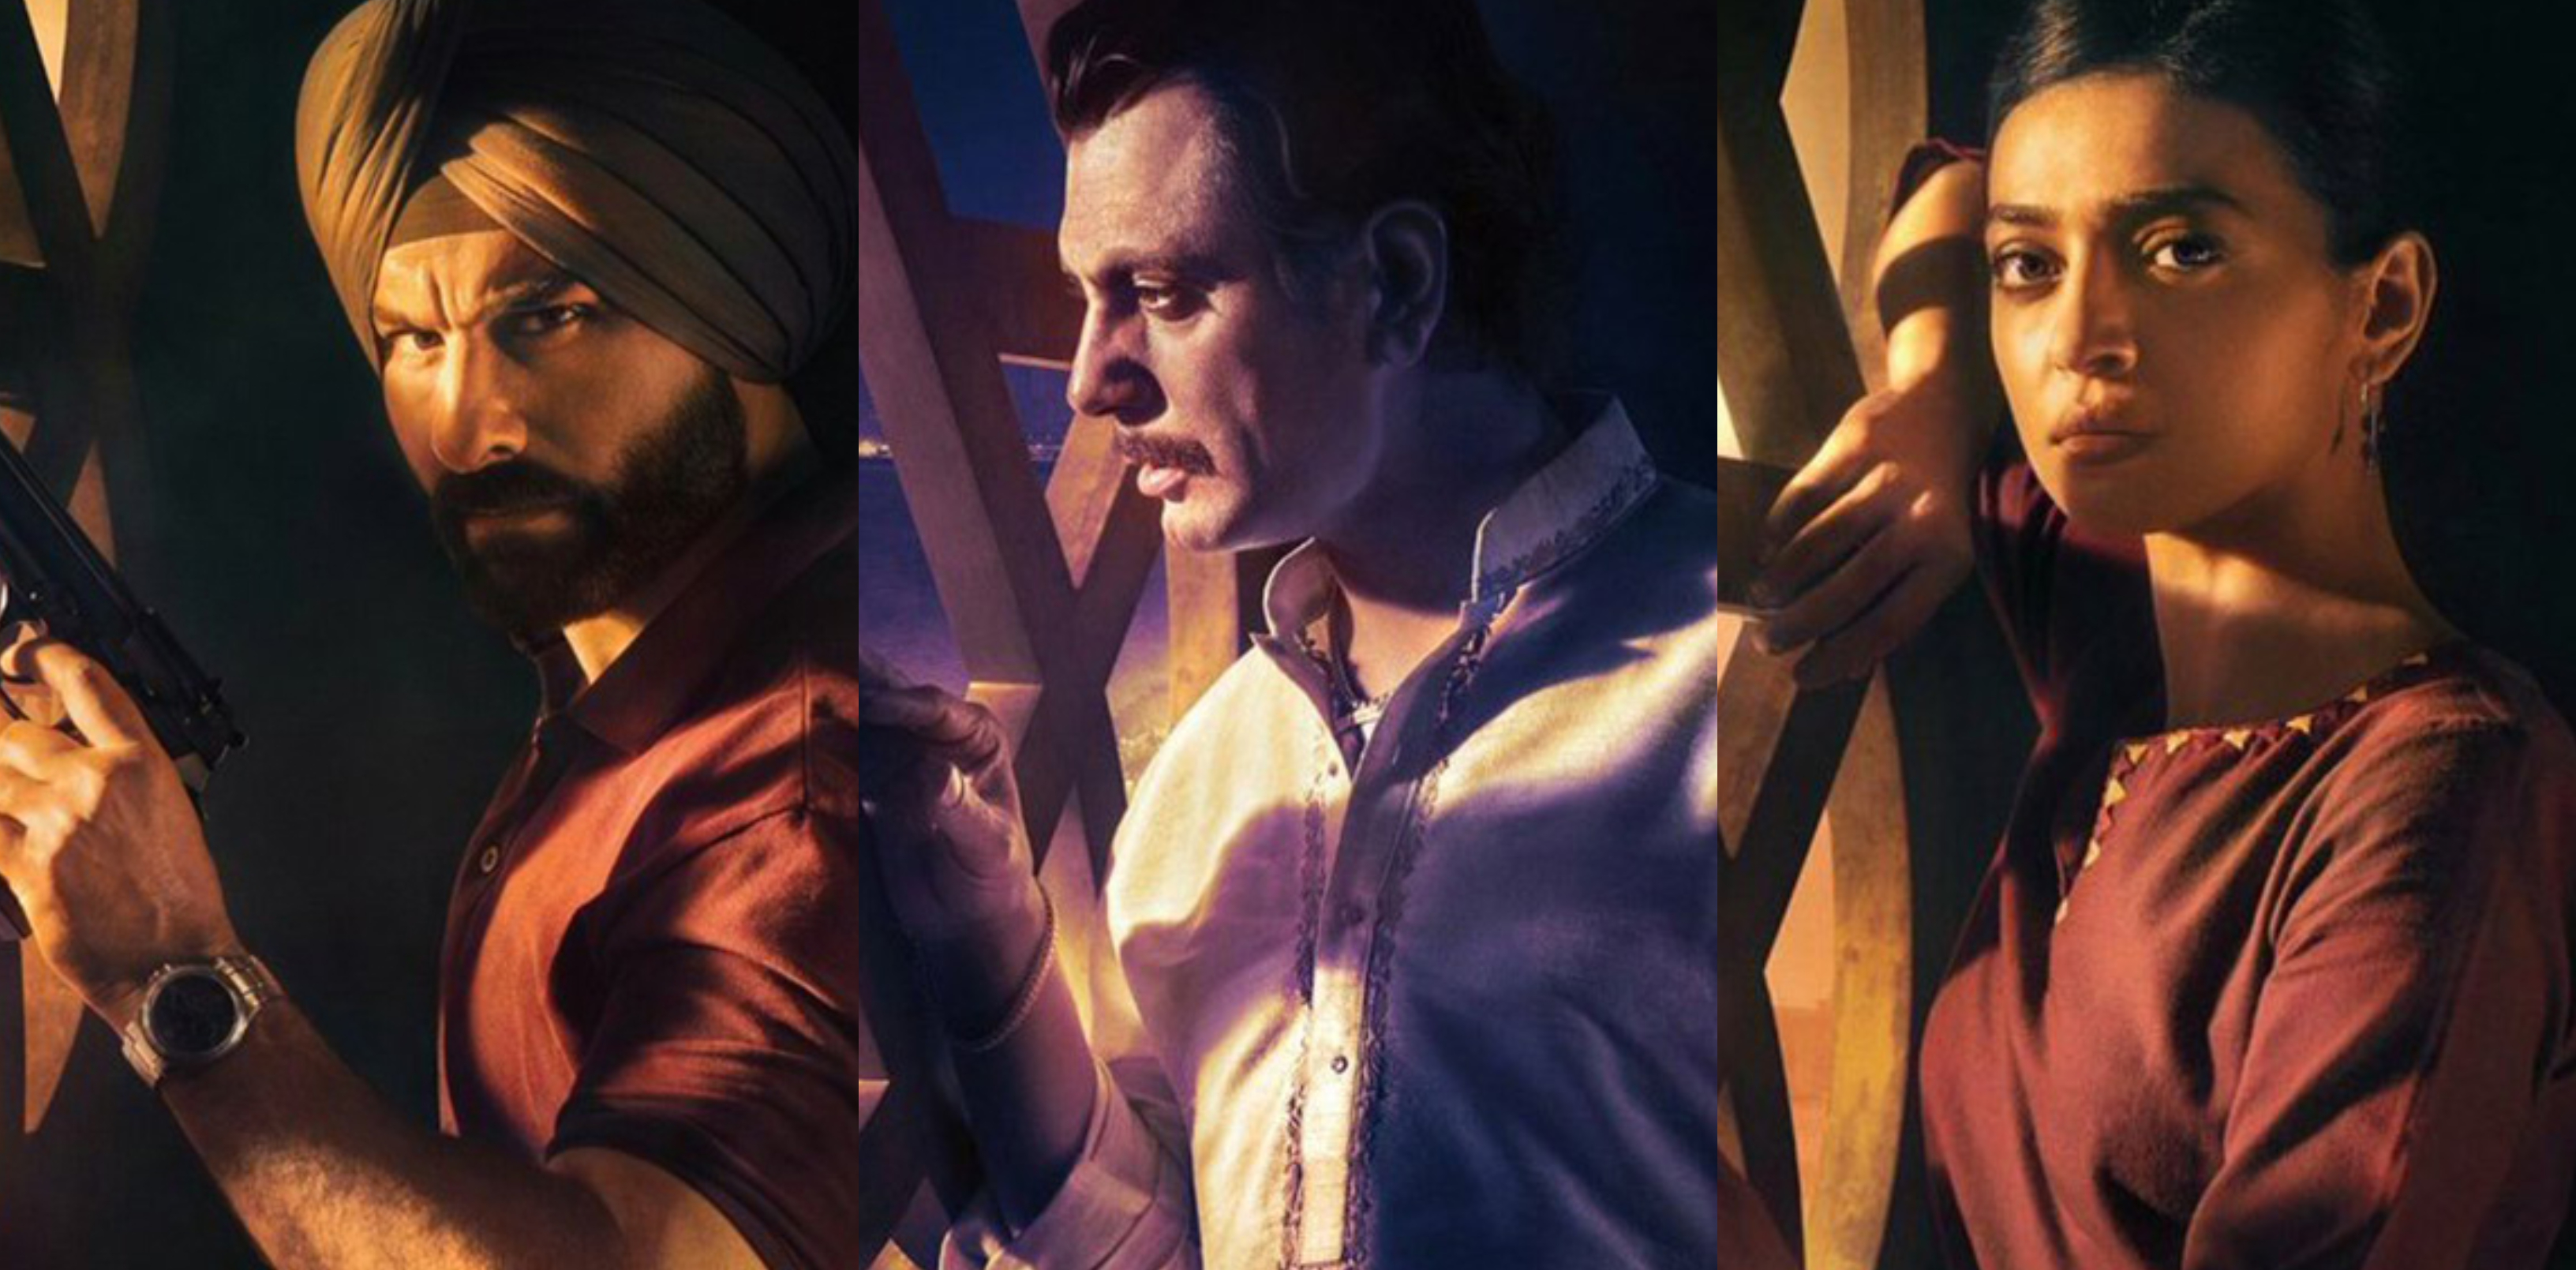 The first season of Sacred Games premiered on Netflix on July 6 and featured (from L-R) Saif Ali Khan, Nawazuddin Siddiqui and Radhika Apte